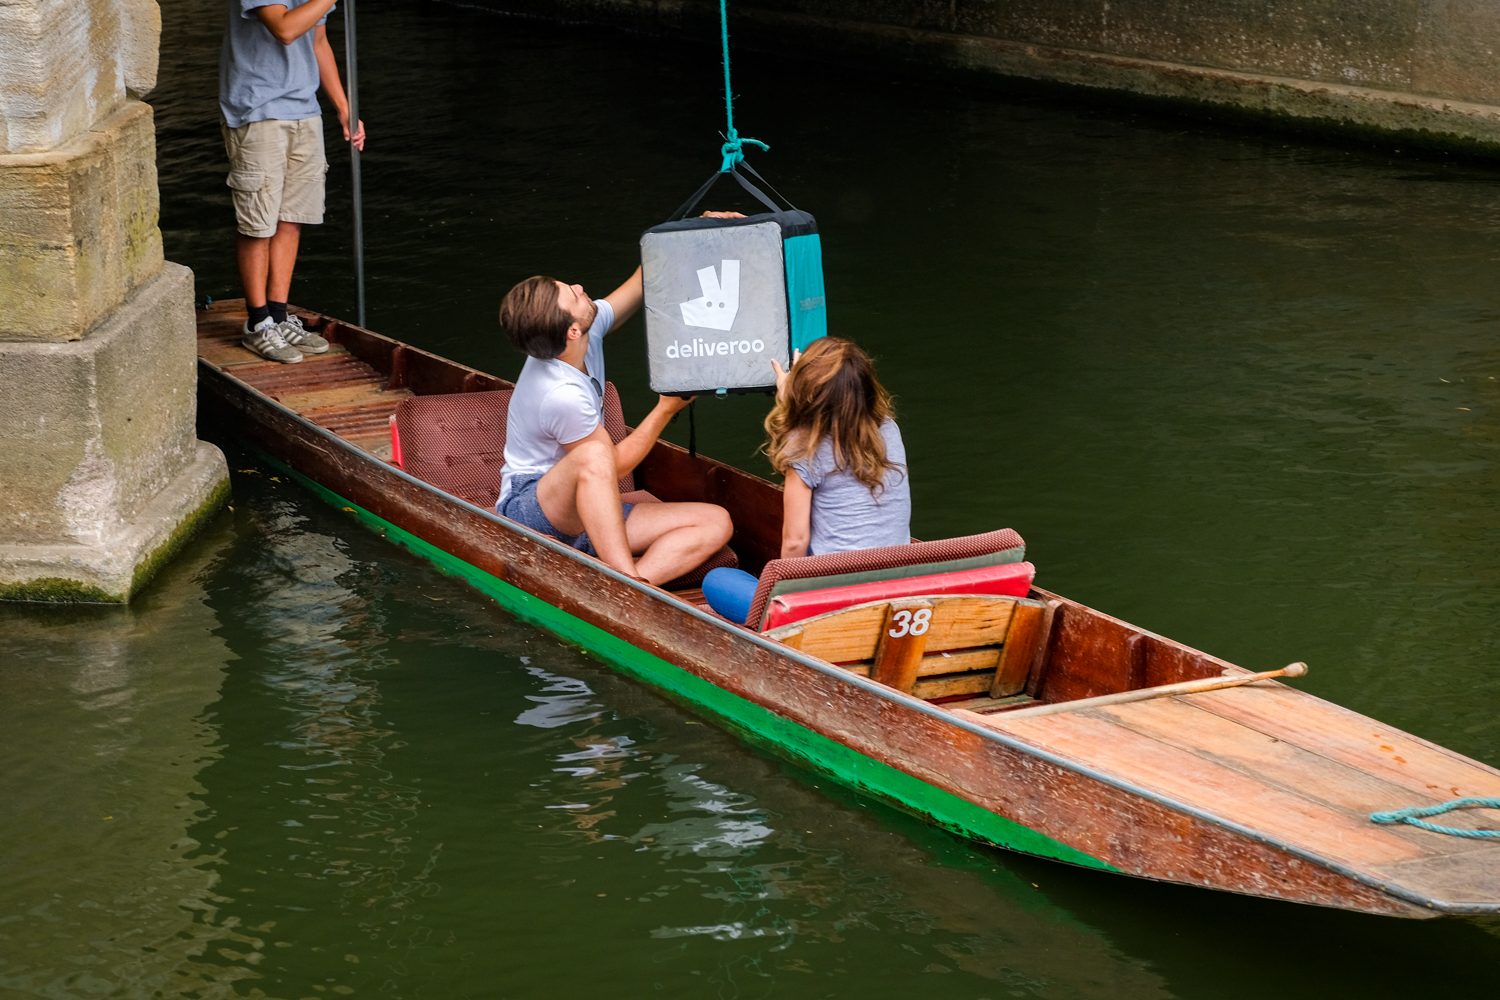 Deliveroo Oxford boat delivery